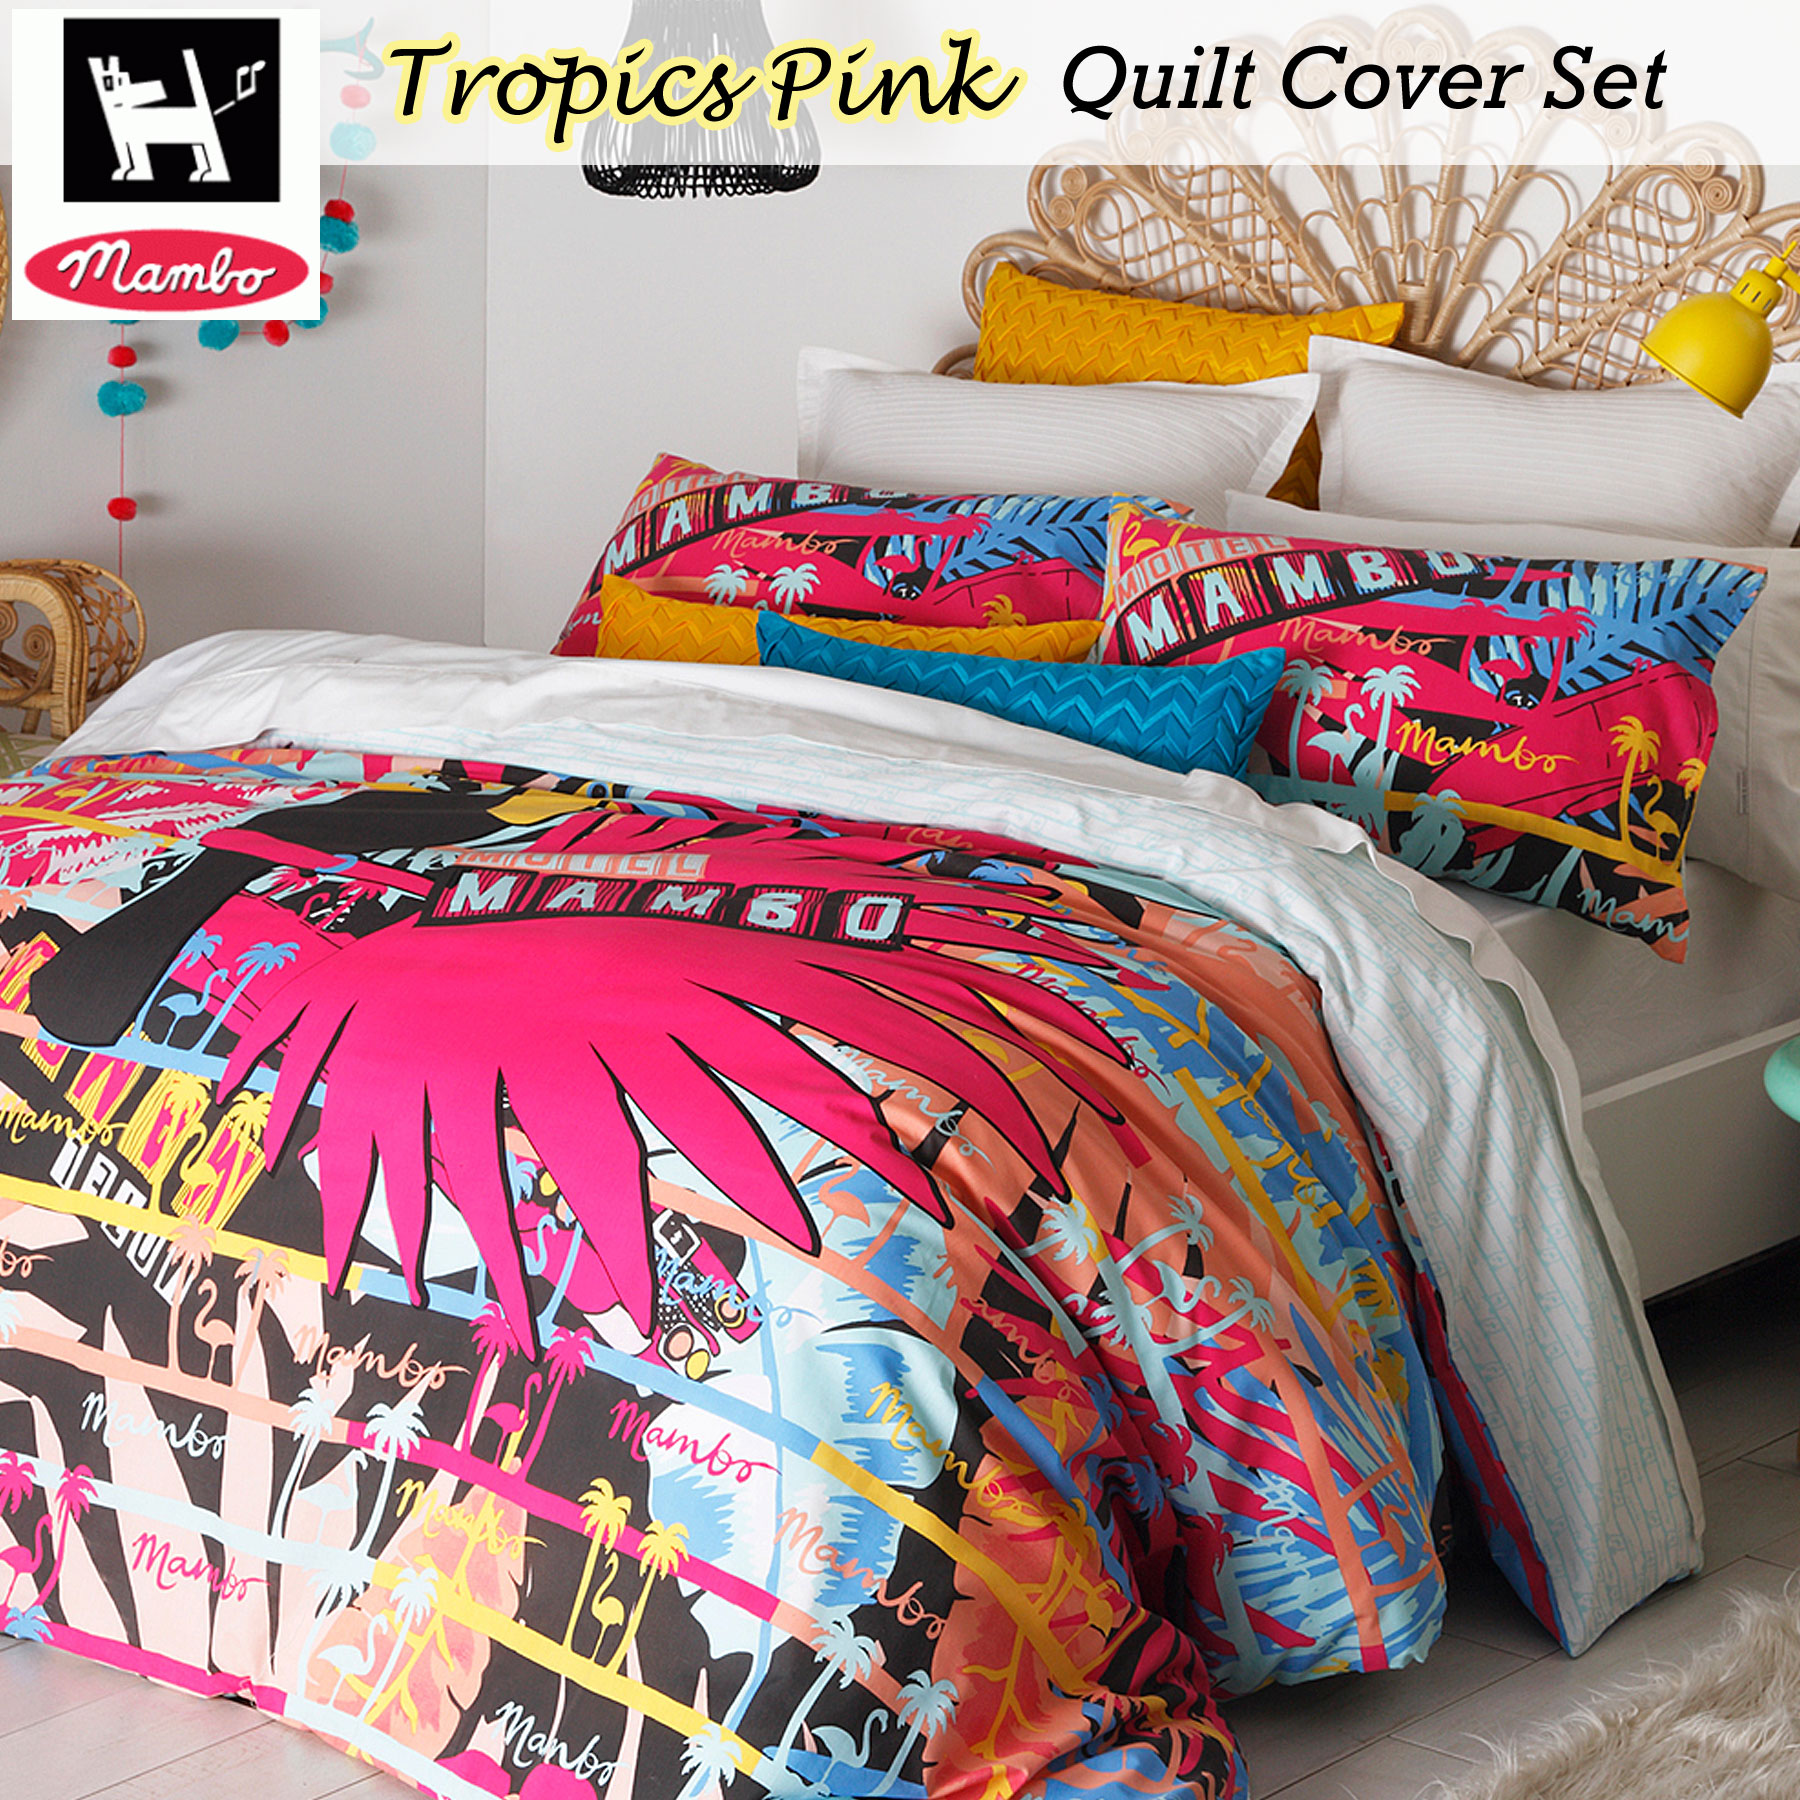 Tropics Pink Surf Quilt DUvet Doona Cover Set by Mambo - SINGLE ... : surf quilt cover - Adamdwight.com